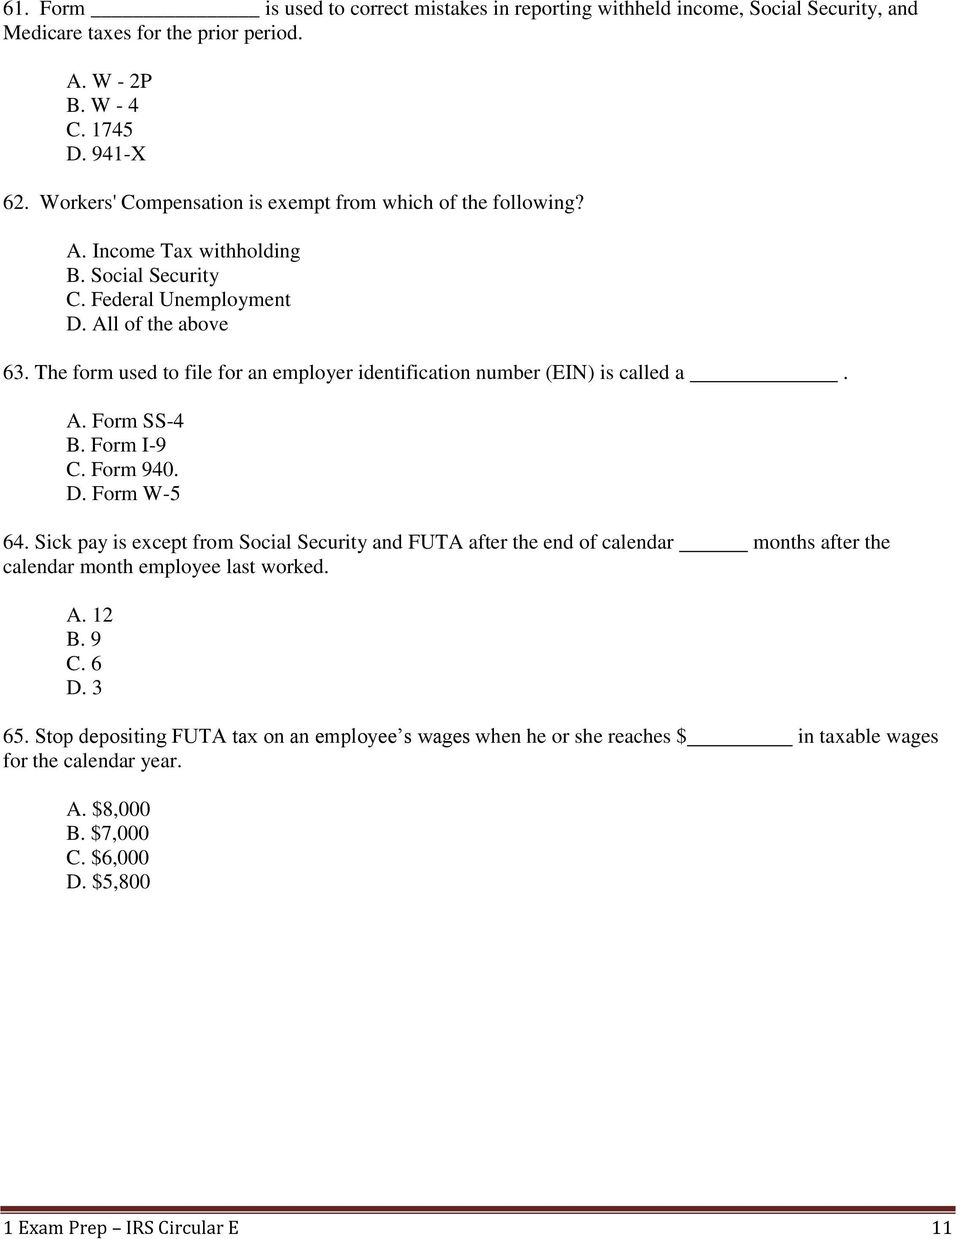 1 Exam Prep IRS Circular E Tax Guide Questions and Answers - PDF